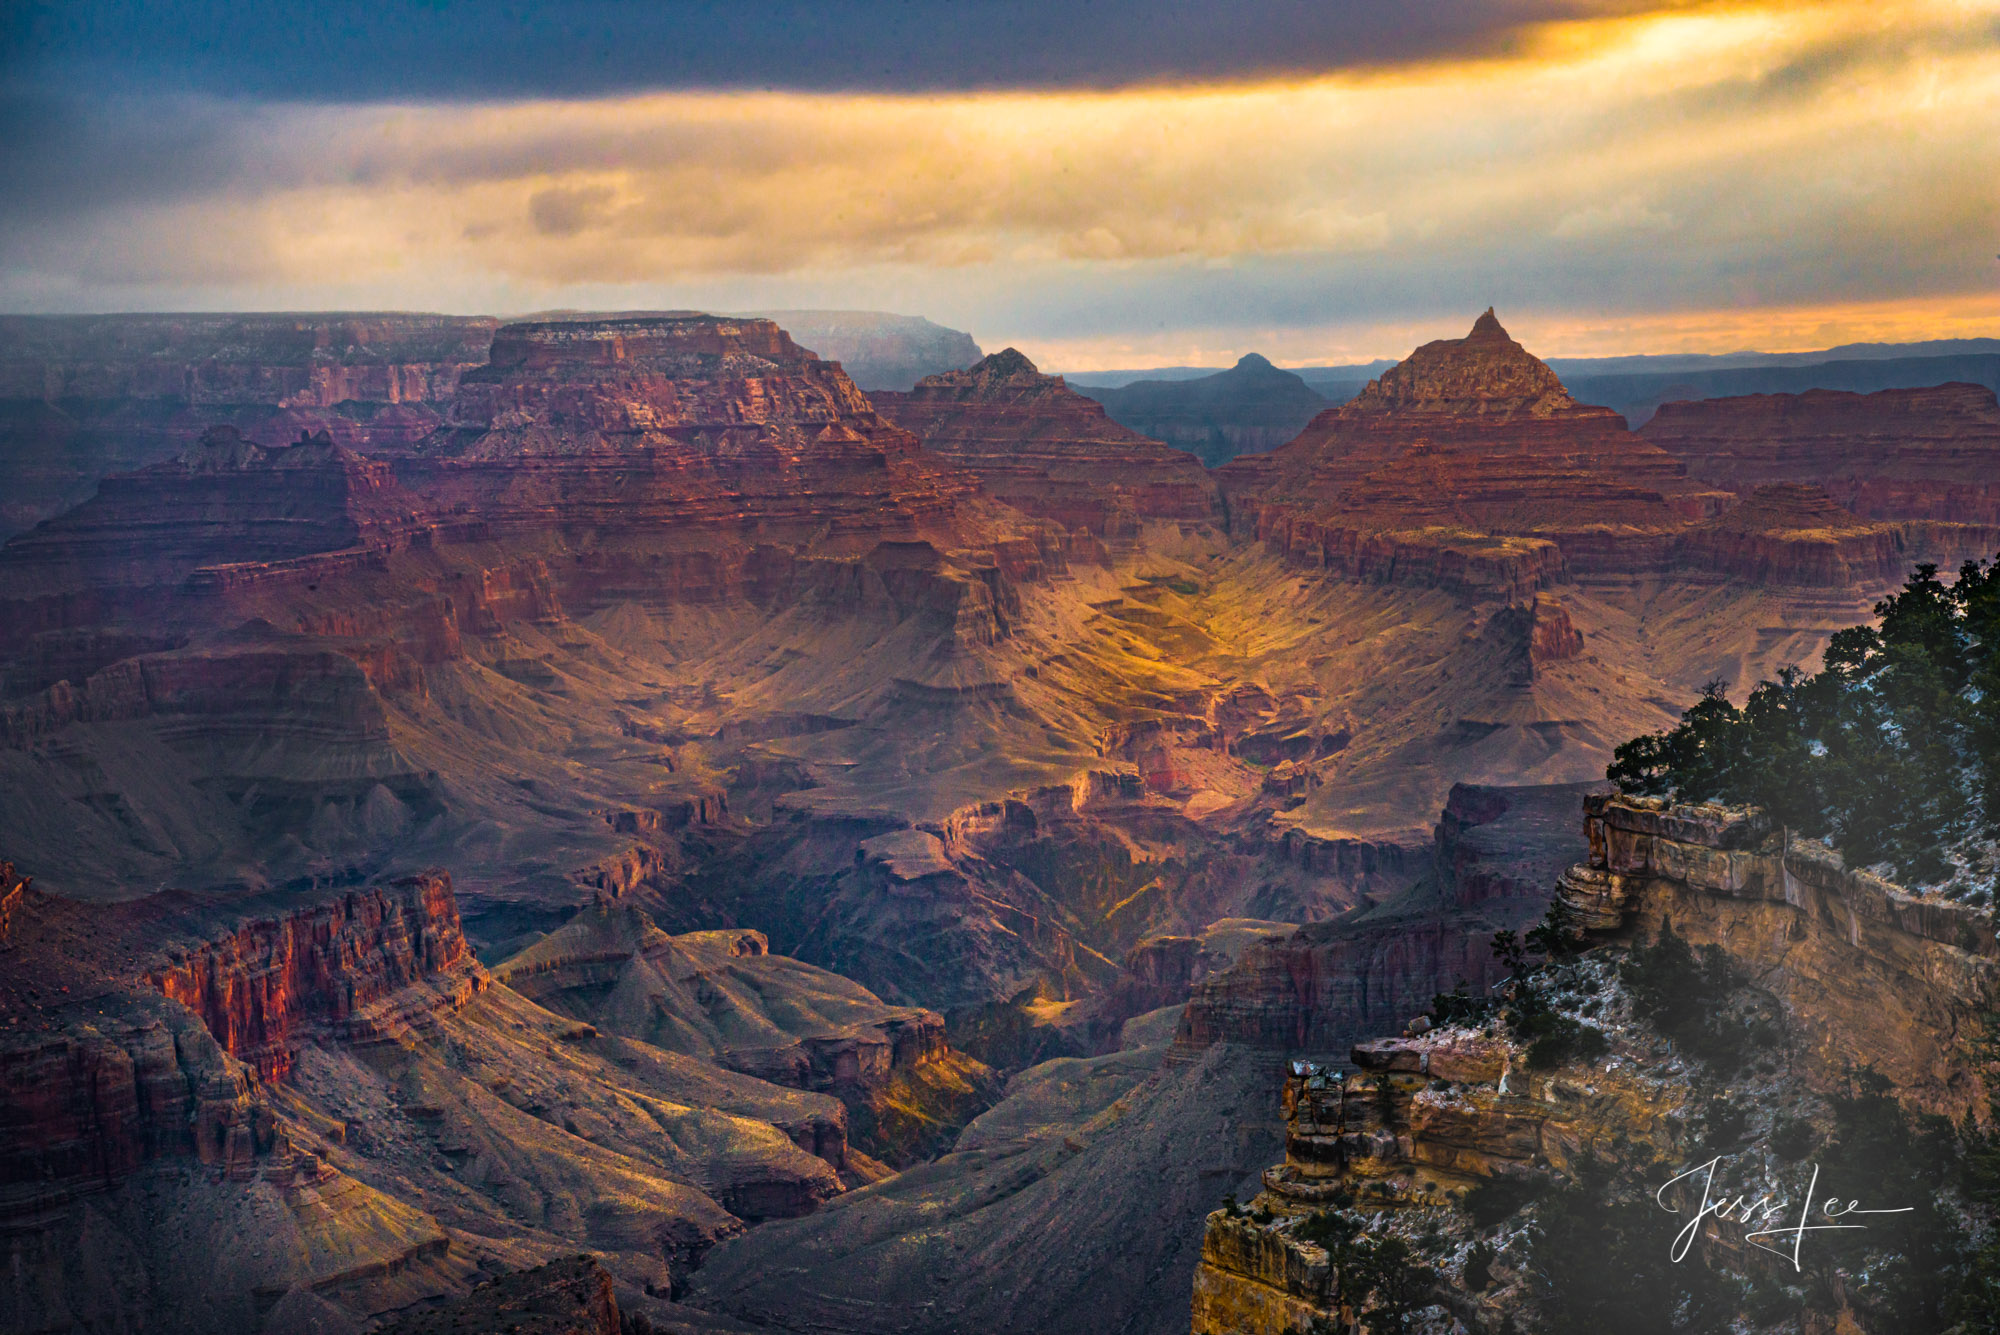 View of the expansive Grand Canyon in Arizona.